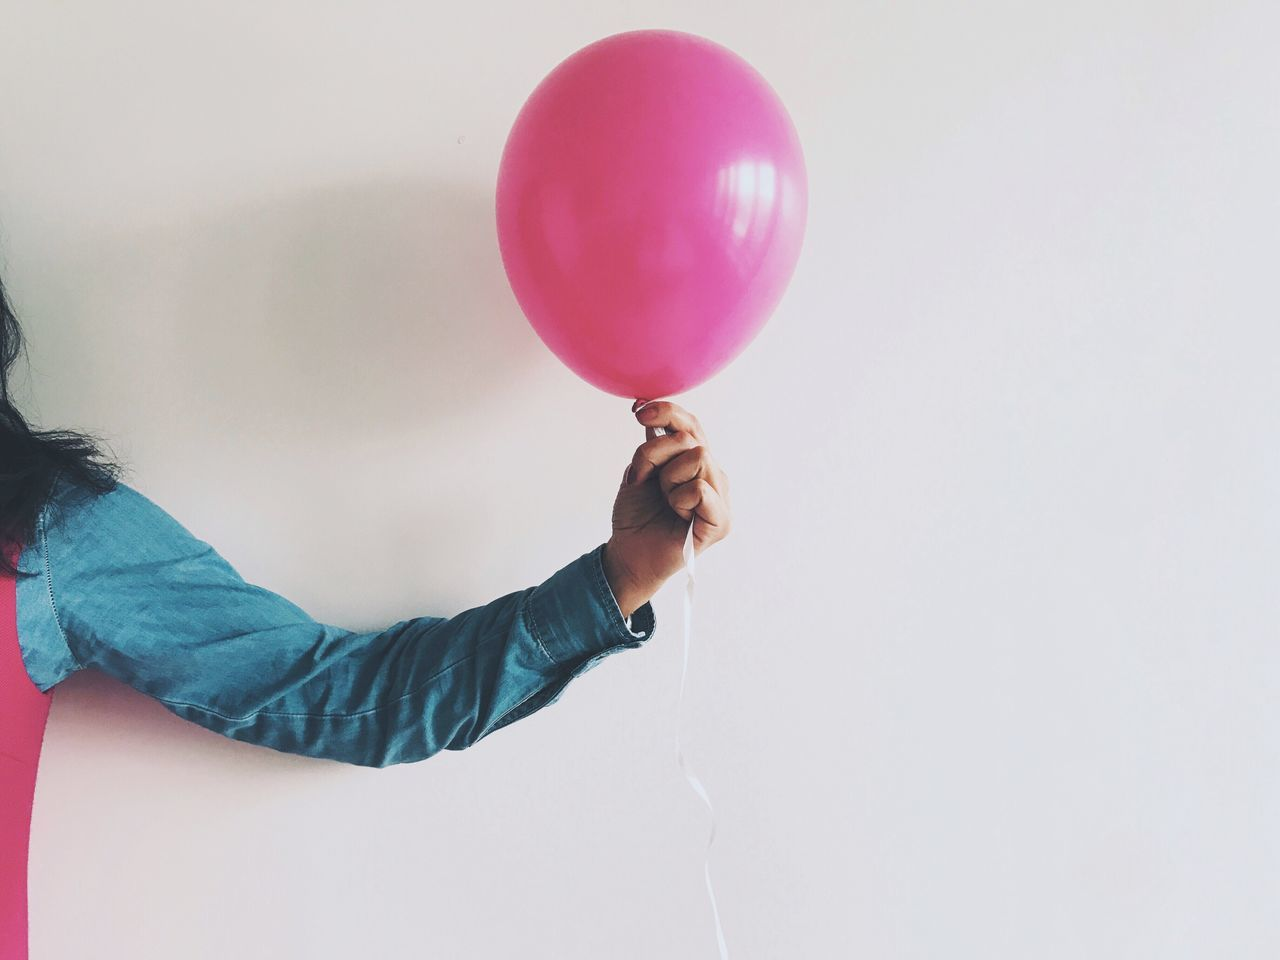 Balloon One Person Holding Real People Lifestyles Leisure Activity Human Hand Women Indoors  Helium Balloon Day Human Body Part People